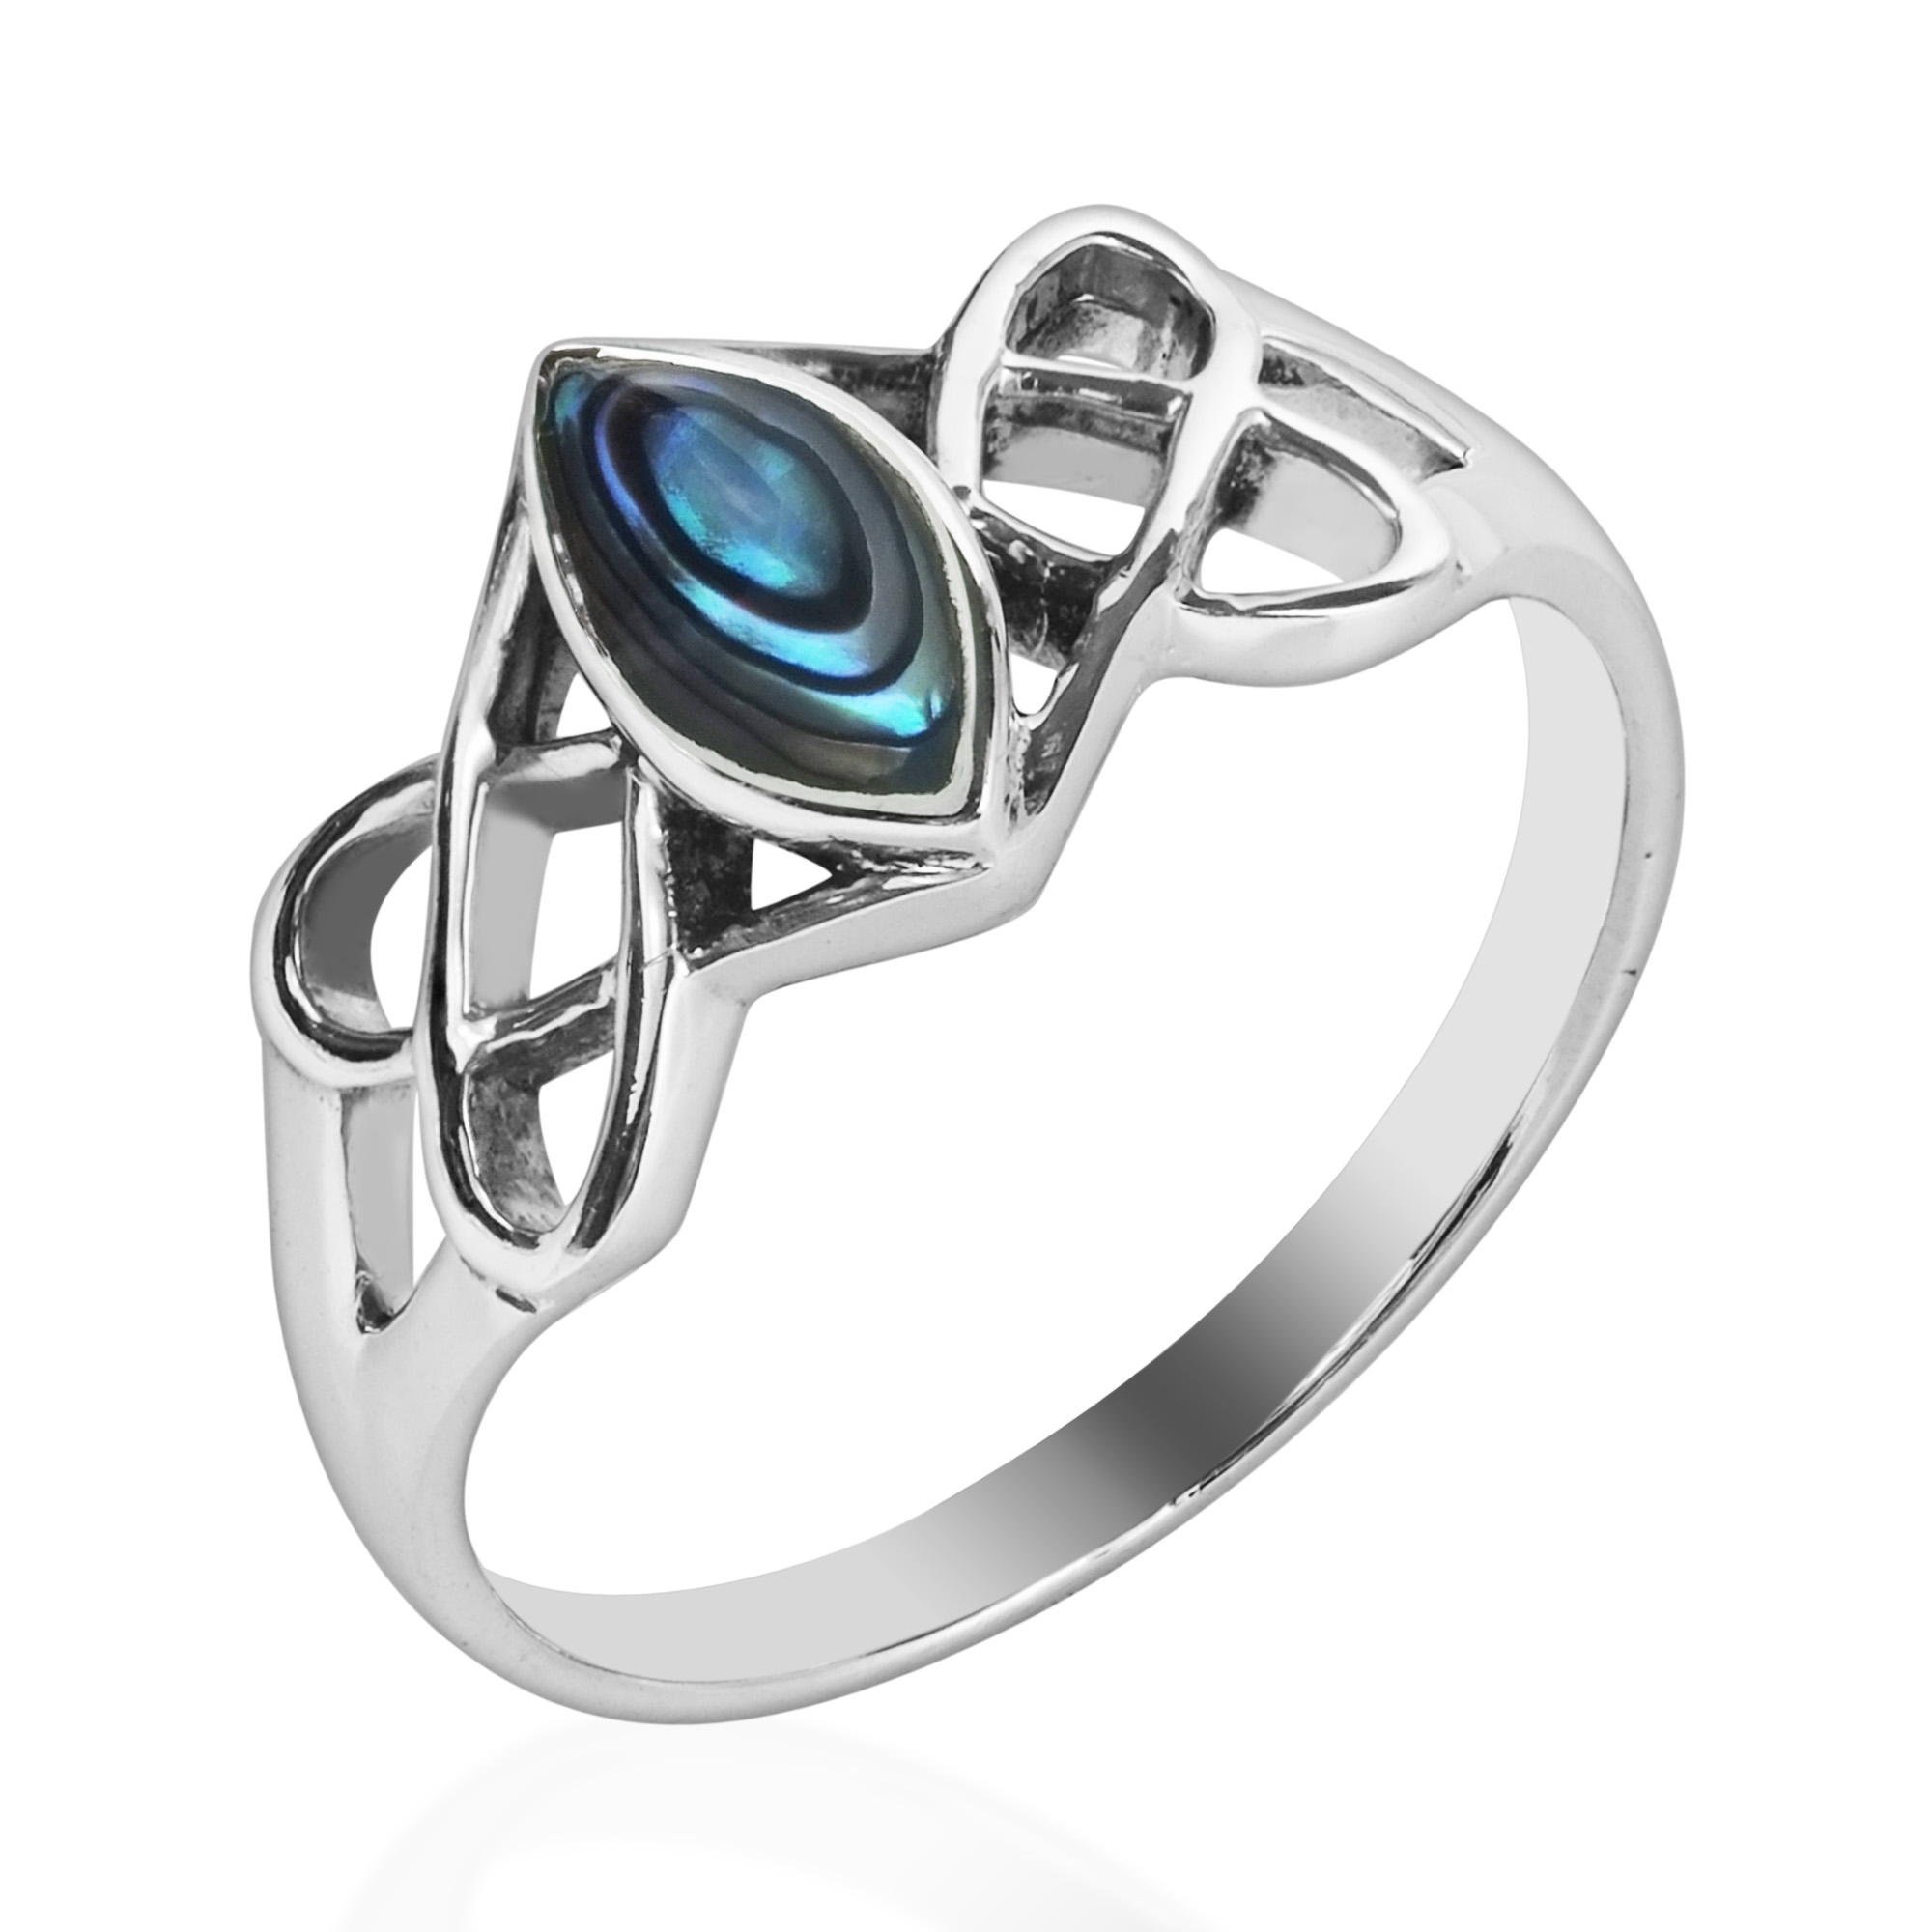 petite ring product fashion shell d truck silver s engagement la sterling vintage page boutique designer rings abalone and